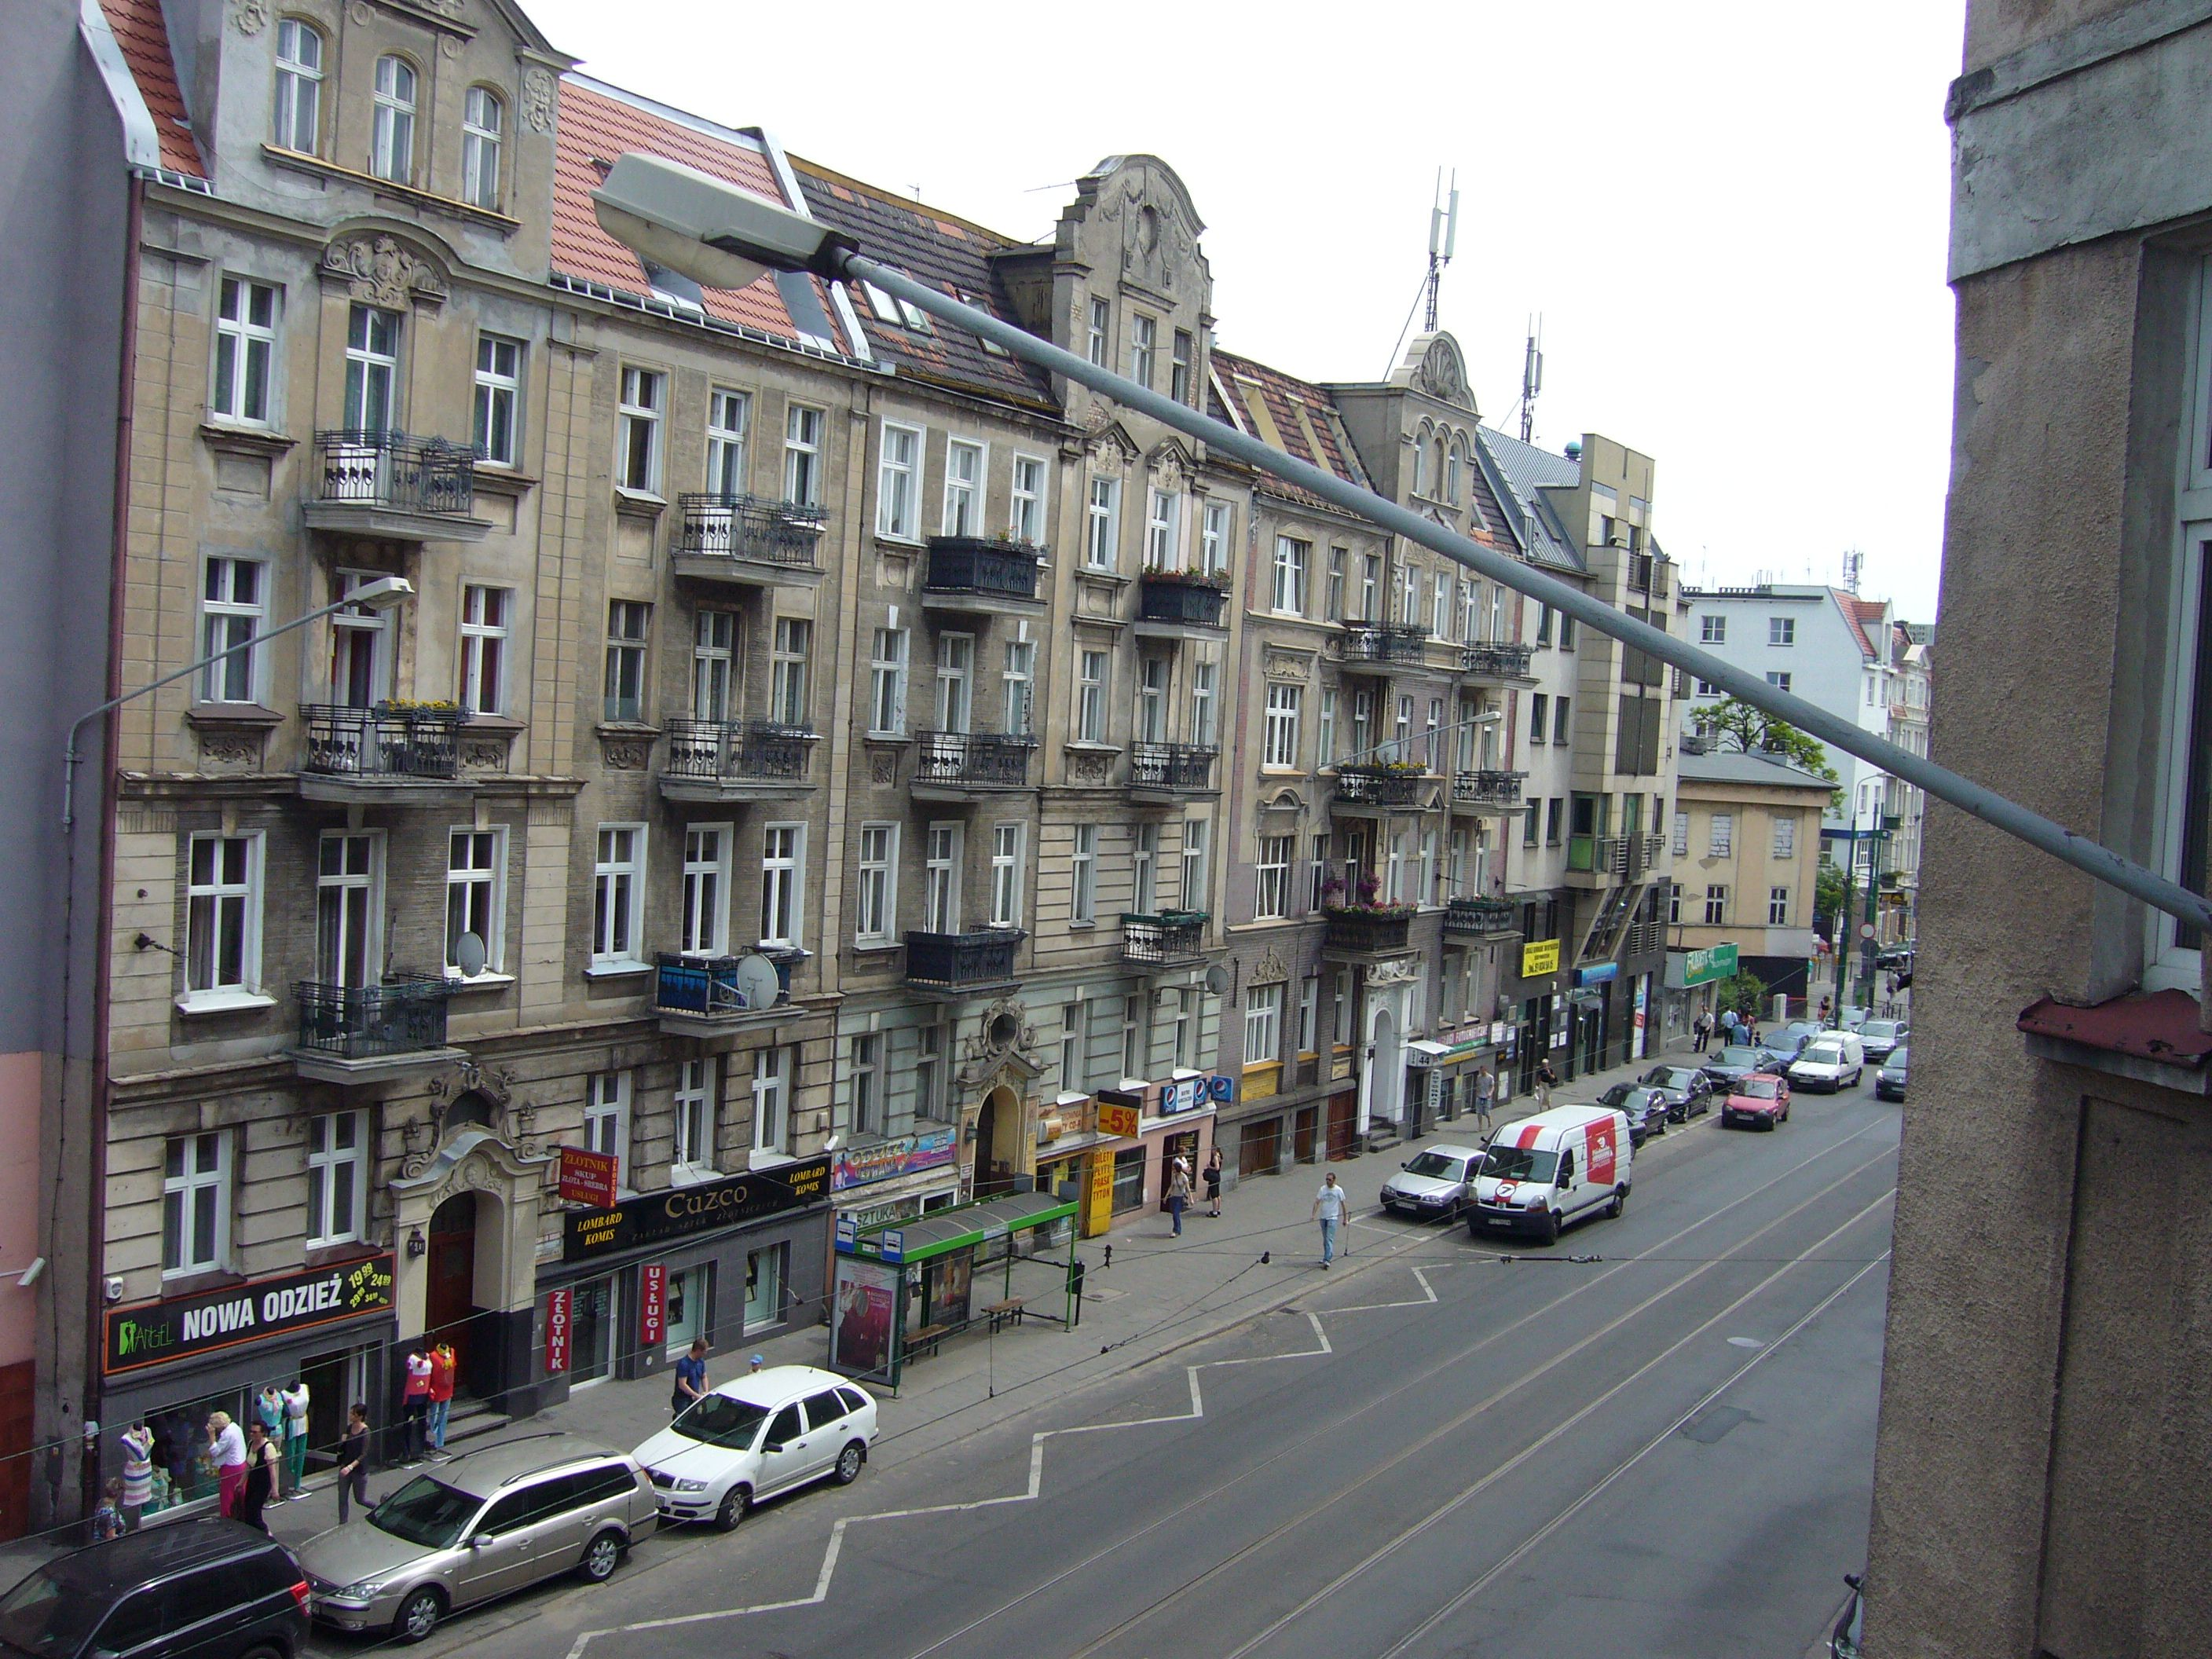 Poznan, Poland - I live in a hundred year old part of the city, crowded and noisy ... this is what I see from my front windows